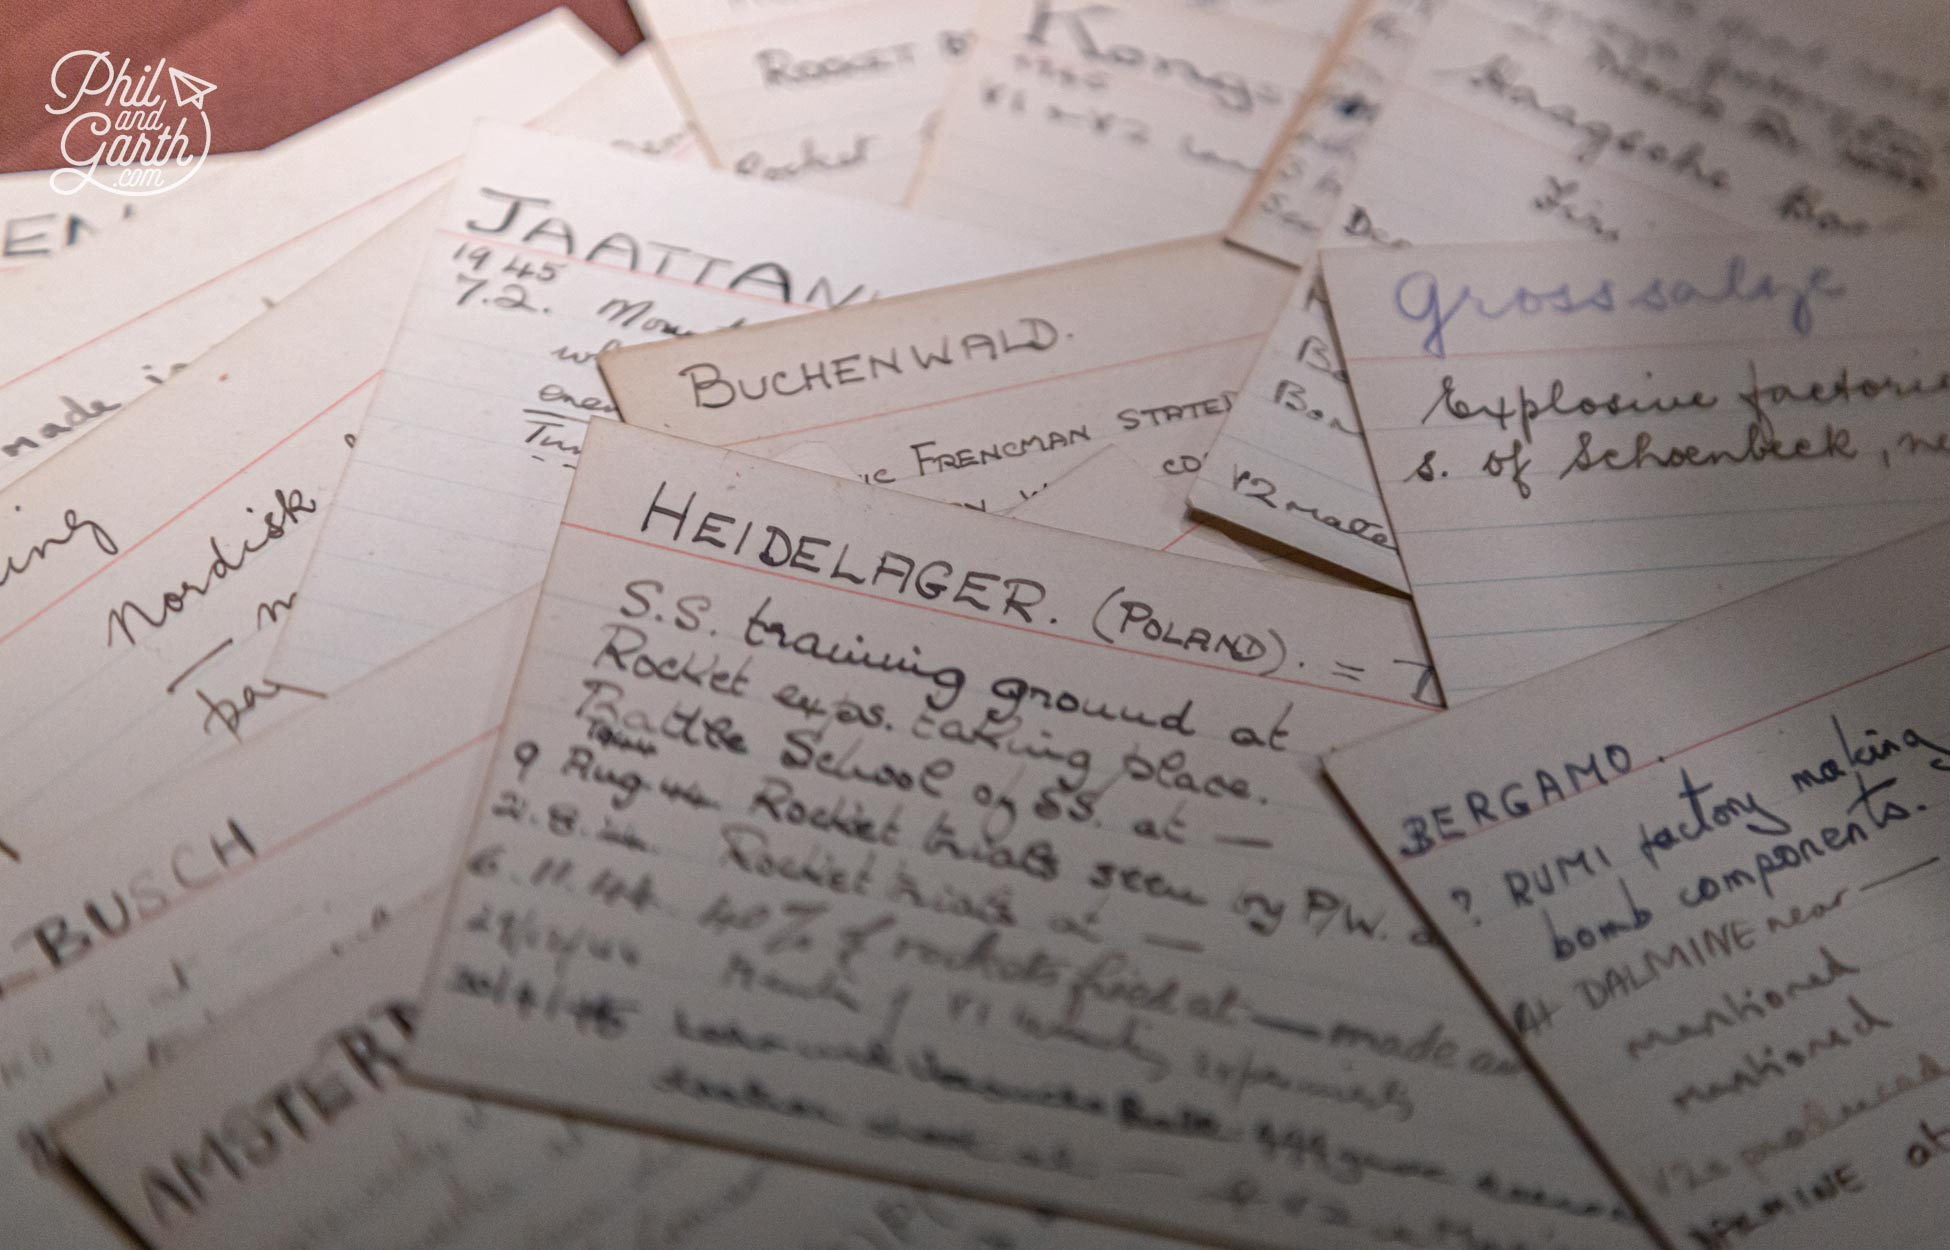 Index cards were used to cross reference messages